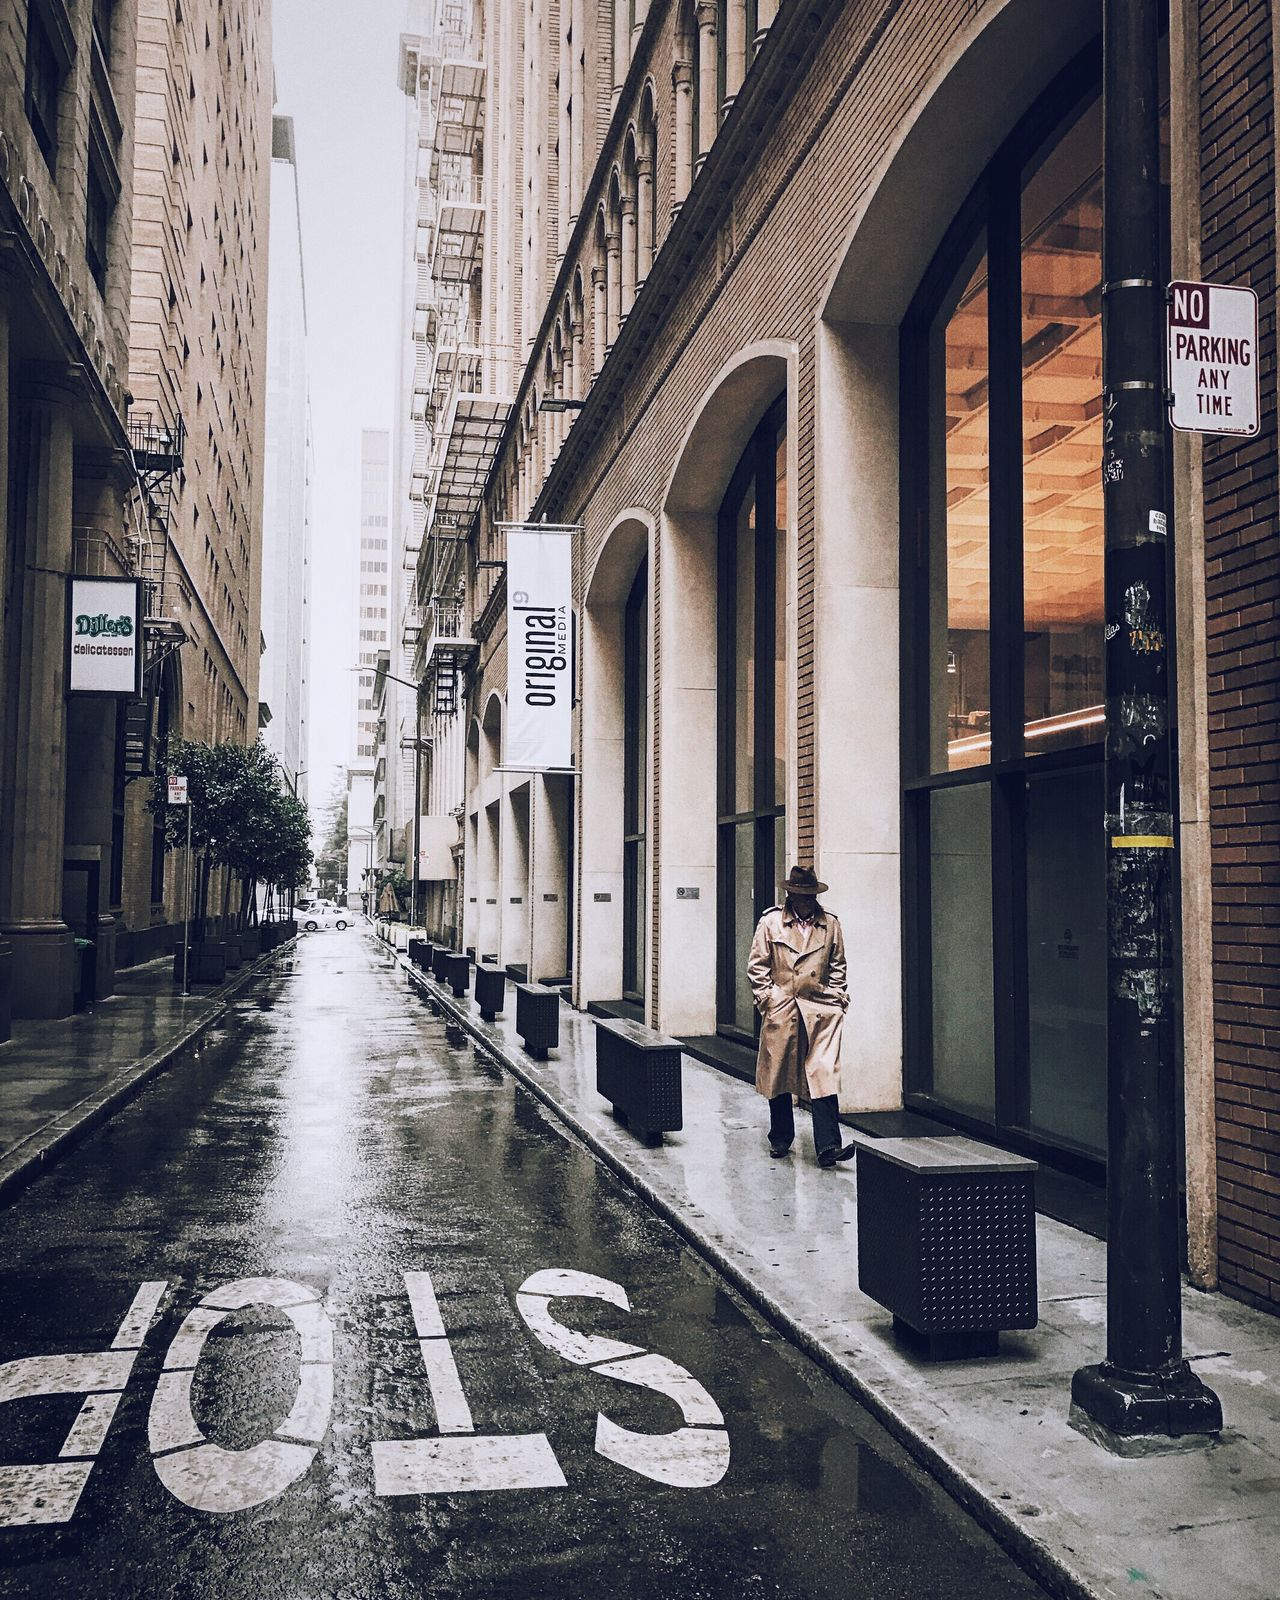 Building Exterior Architecture Adults Only Only Women Text City Built Structure Travel Destinations Adult One Person Outdoors People Day One Woman Only Road Sign